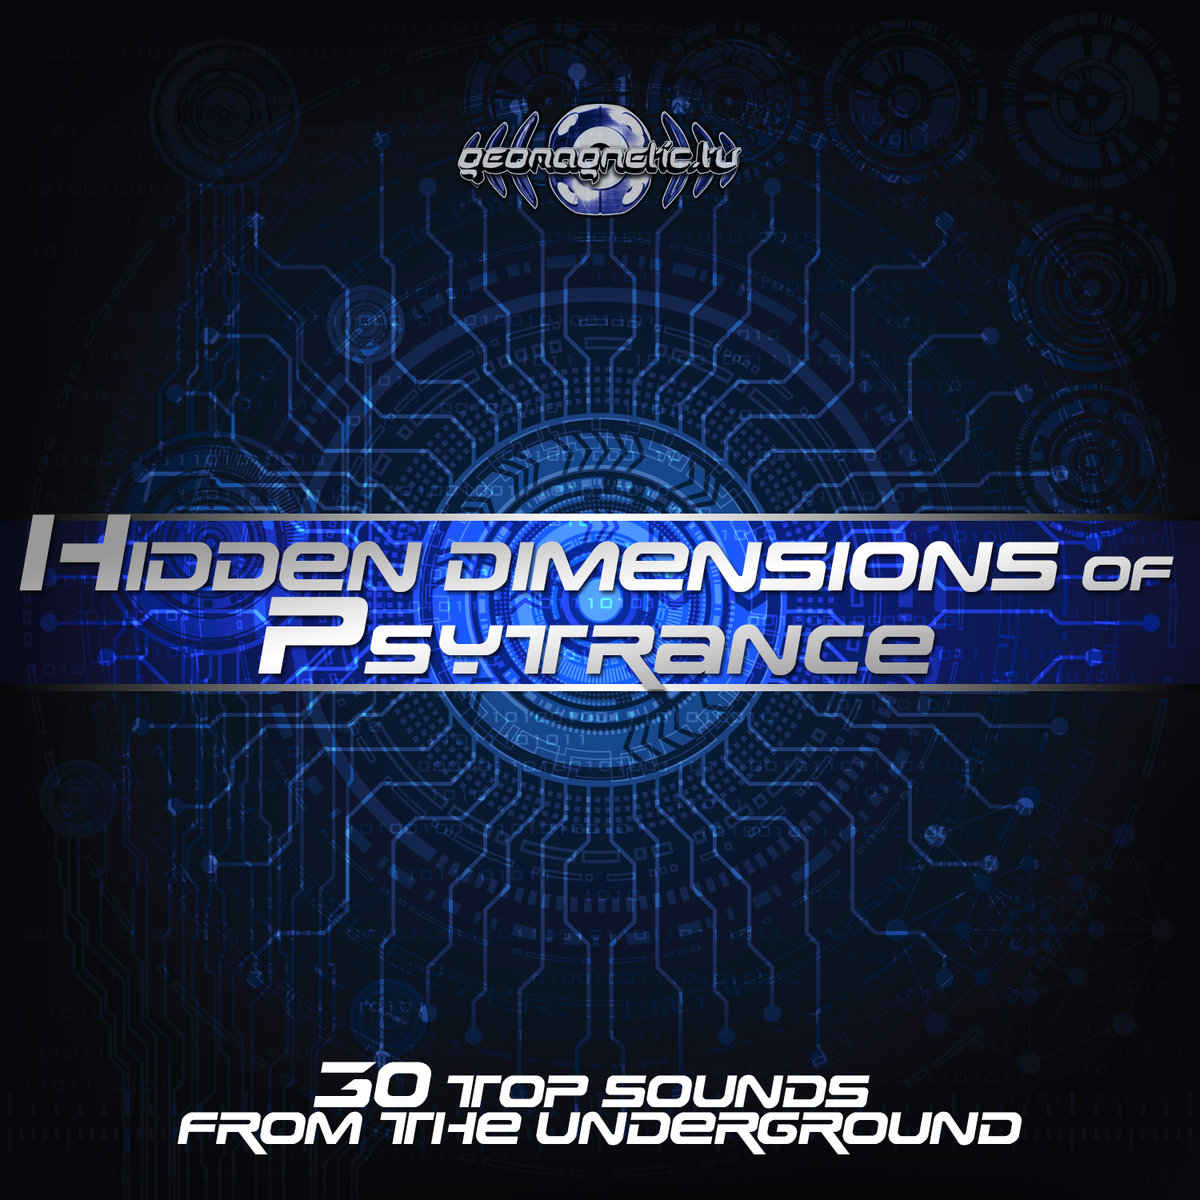 Various Artists - Hidden Dimensions of Psytrance (30 Top Sounds From The Underground) (artwork)